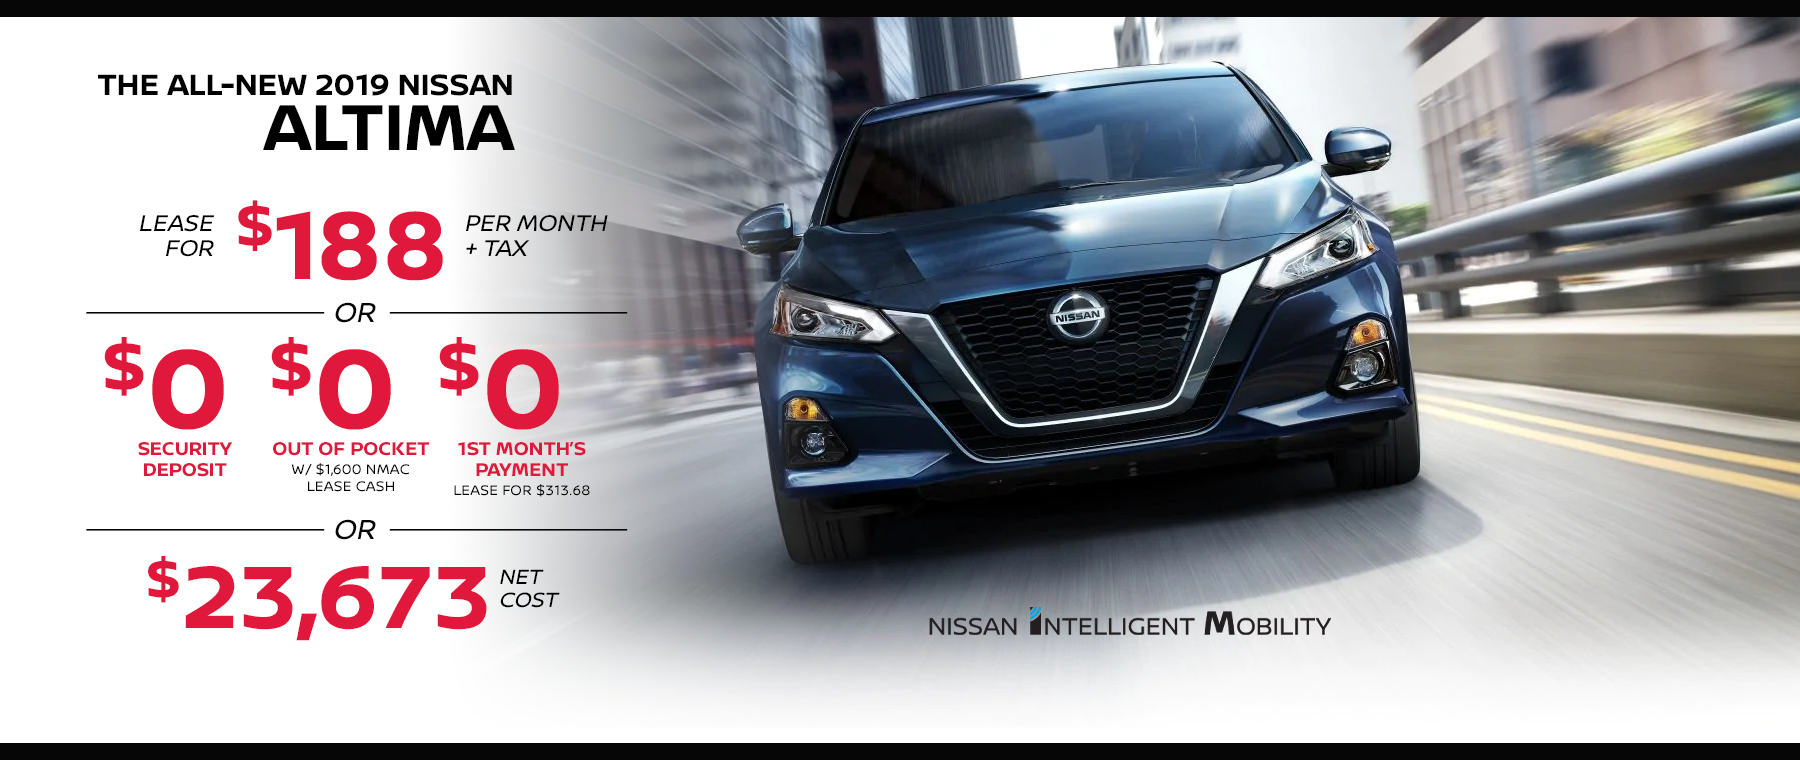 san diego altima lease special